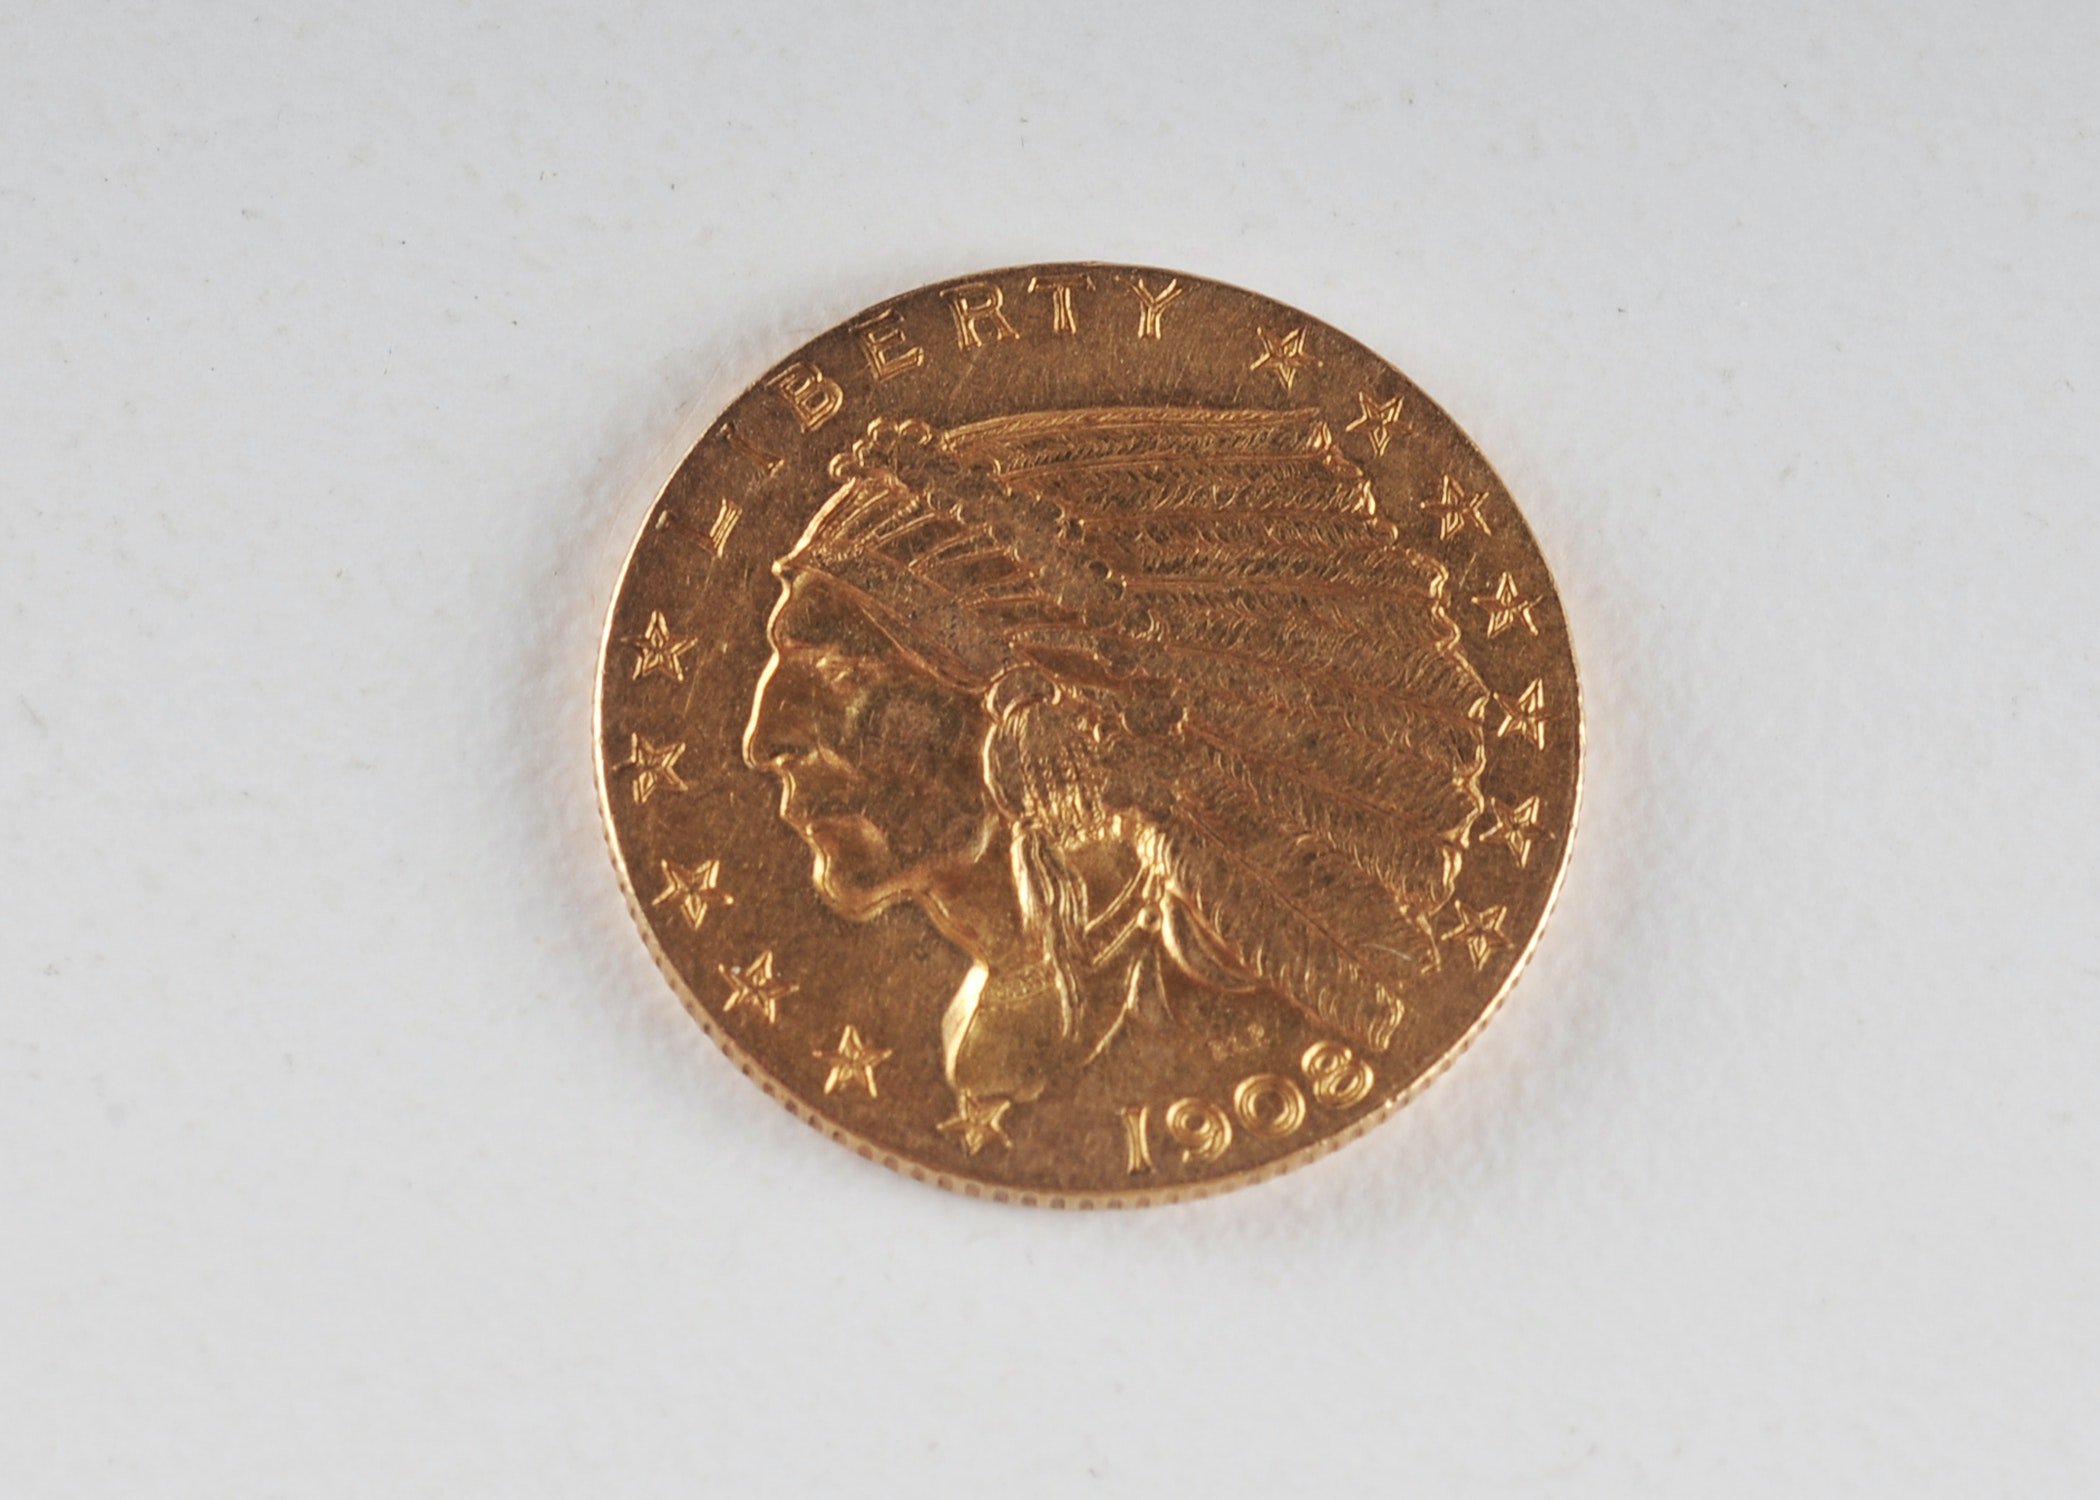 First year of issue 1908 $2 1/2 dollar Indian Head gold coin